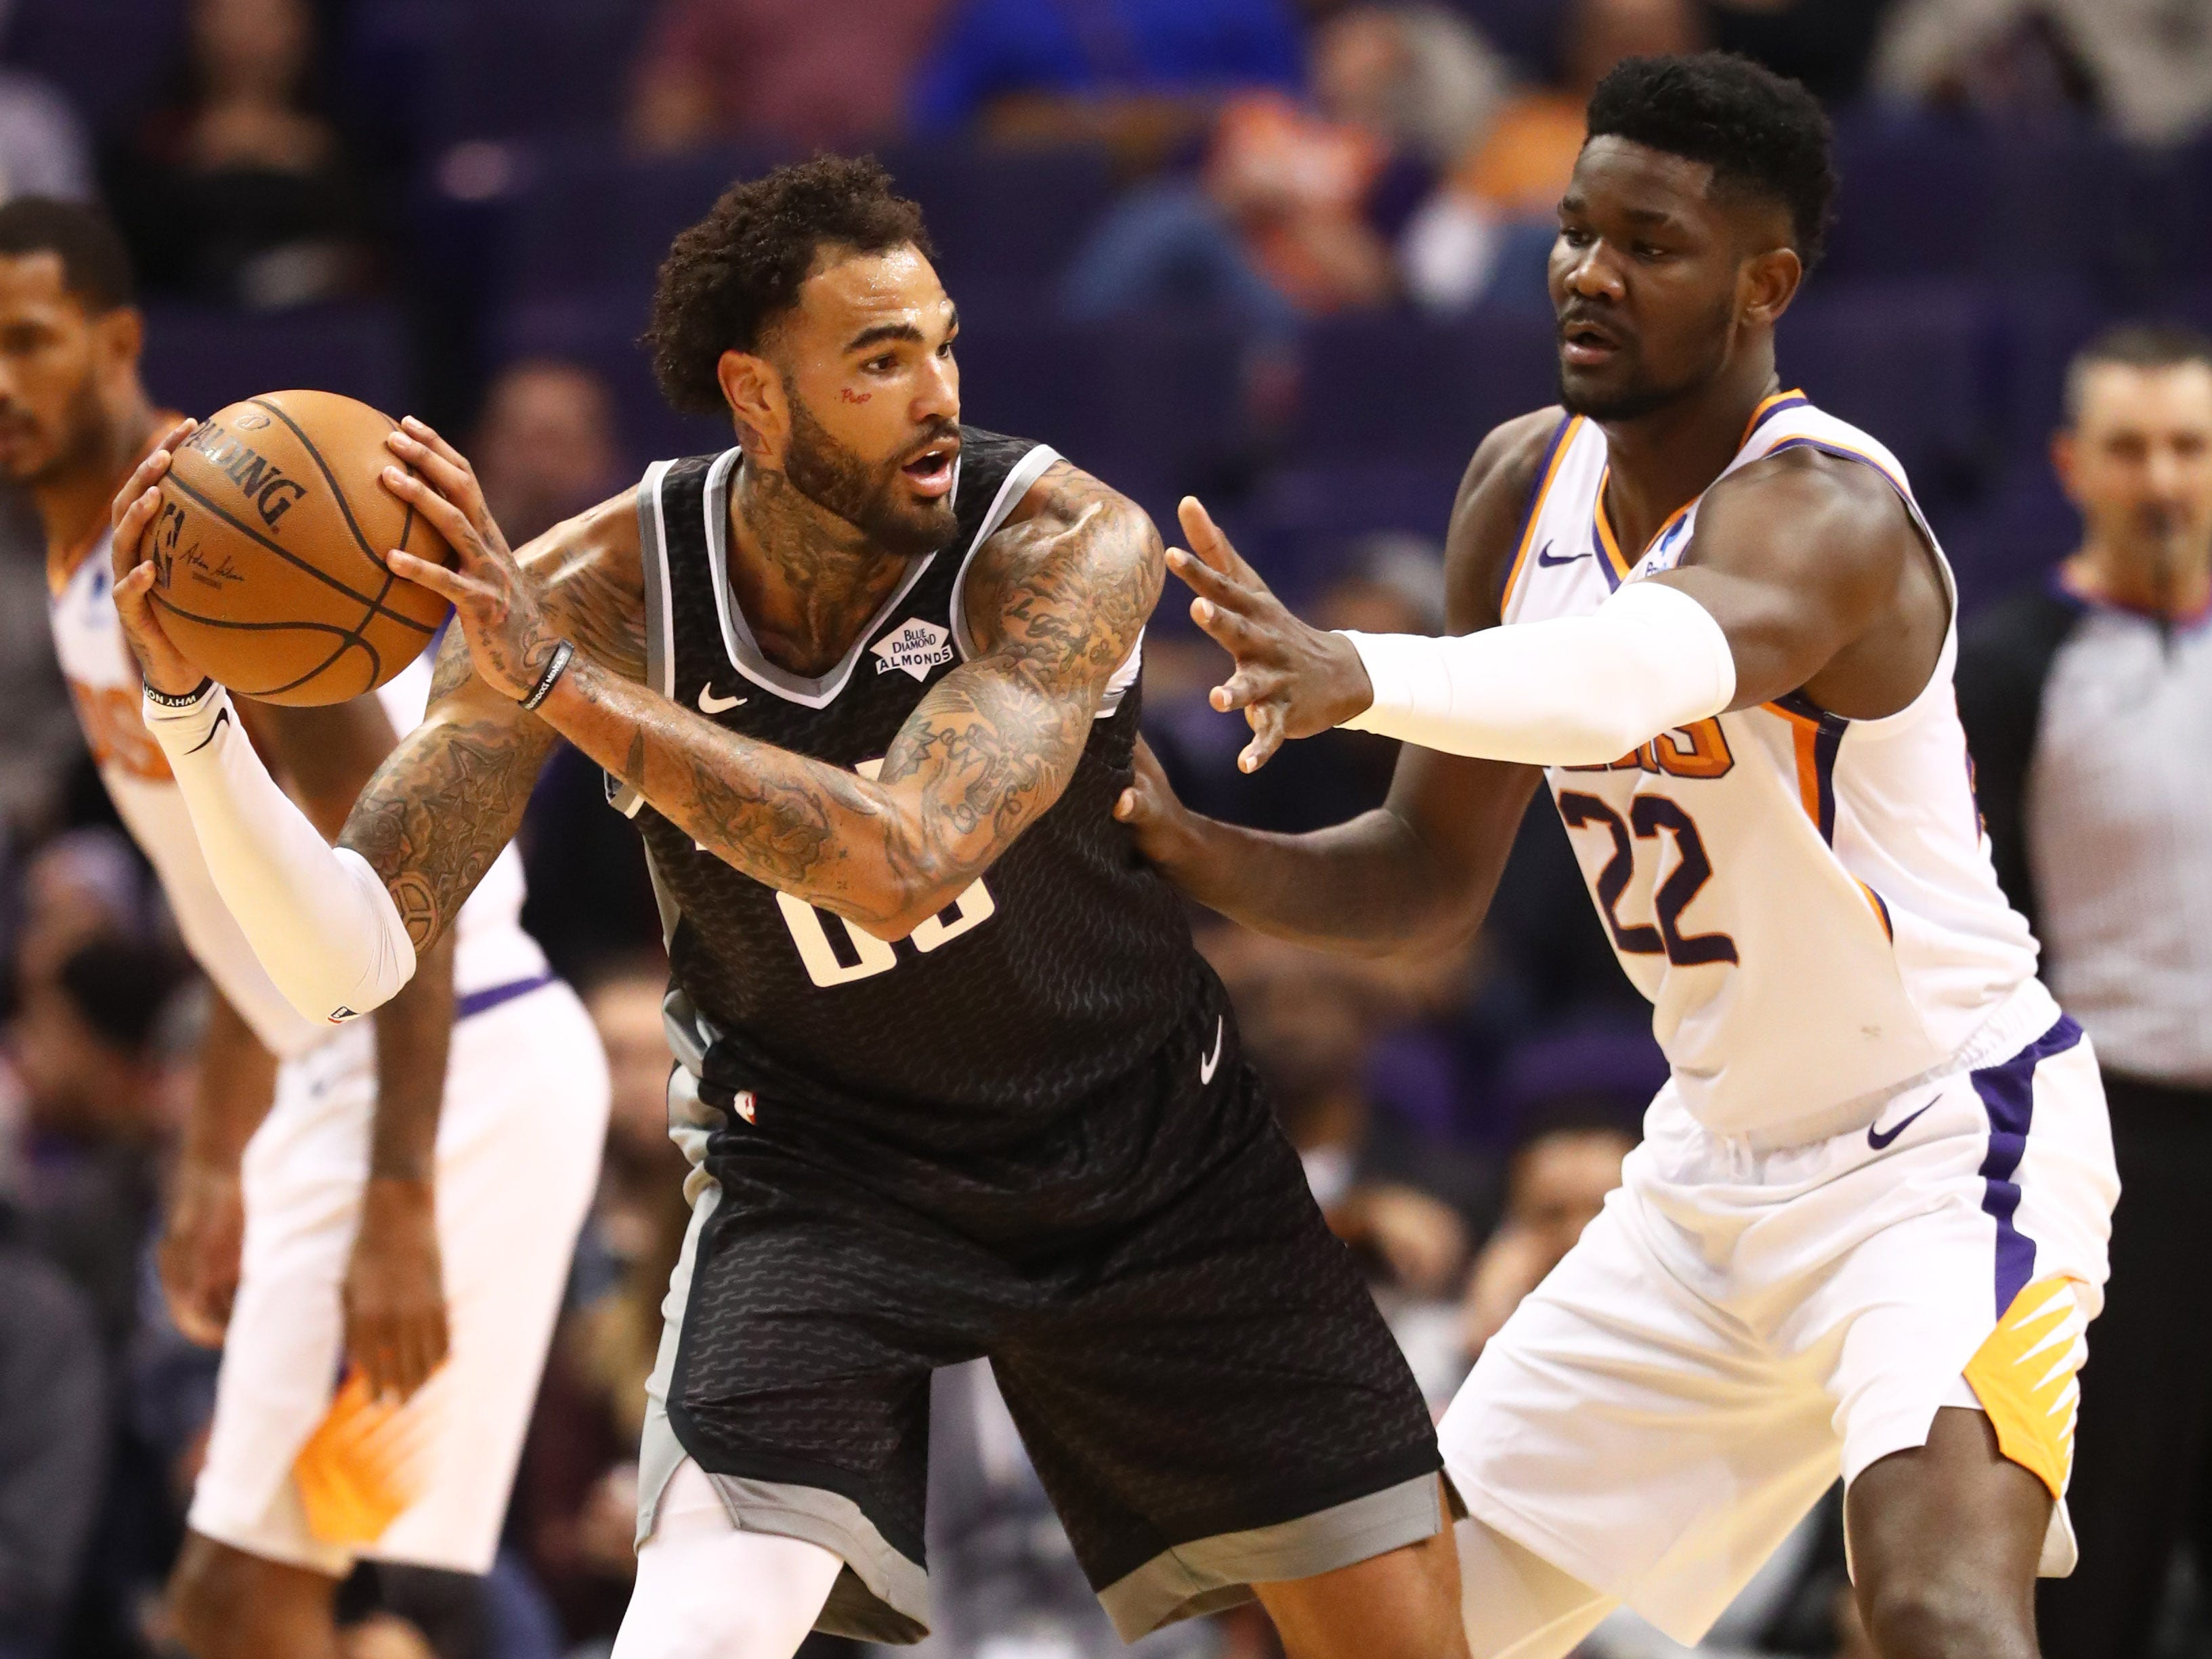 Dec 4, 2018; Phoenix, AZ, USA; Sacramento Kings center Willie Cauley-Stein (left) controls the ball against Phoenix Suns center Deandre Ayton in the first half at Talking Stick Resort Arena. Mandatory Credit: Mark J. Rebilas-USA TODAY Sports